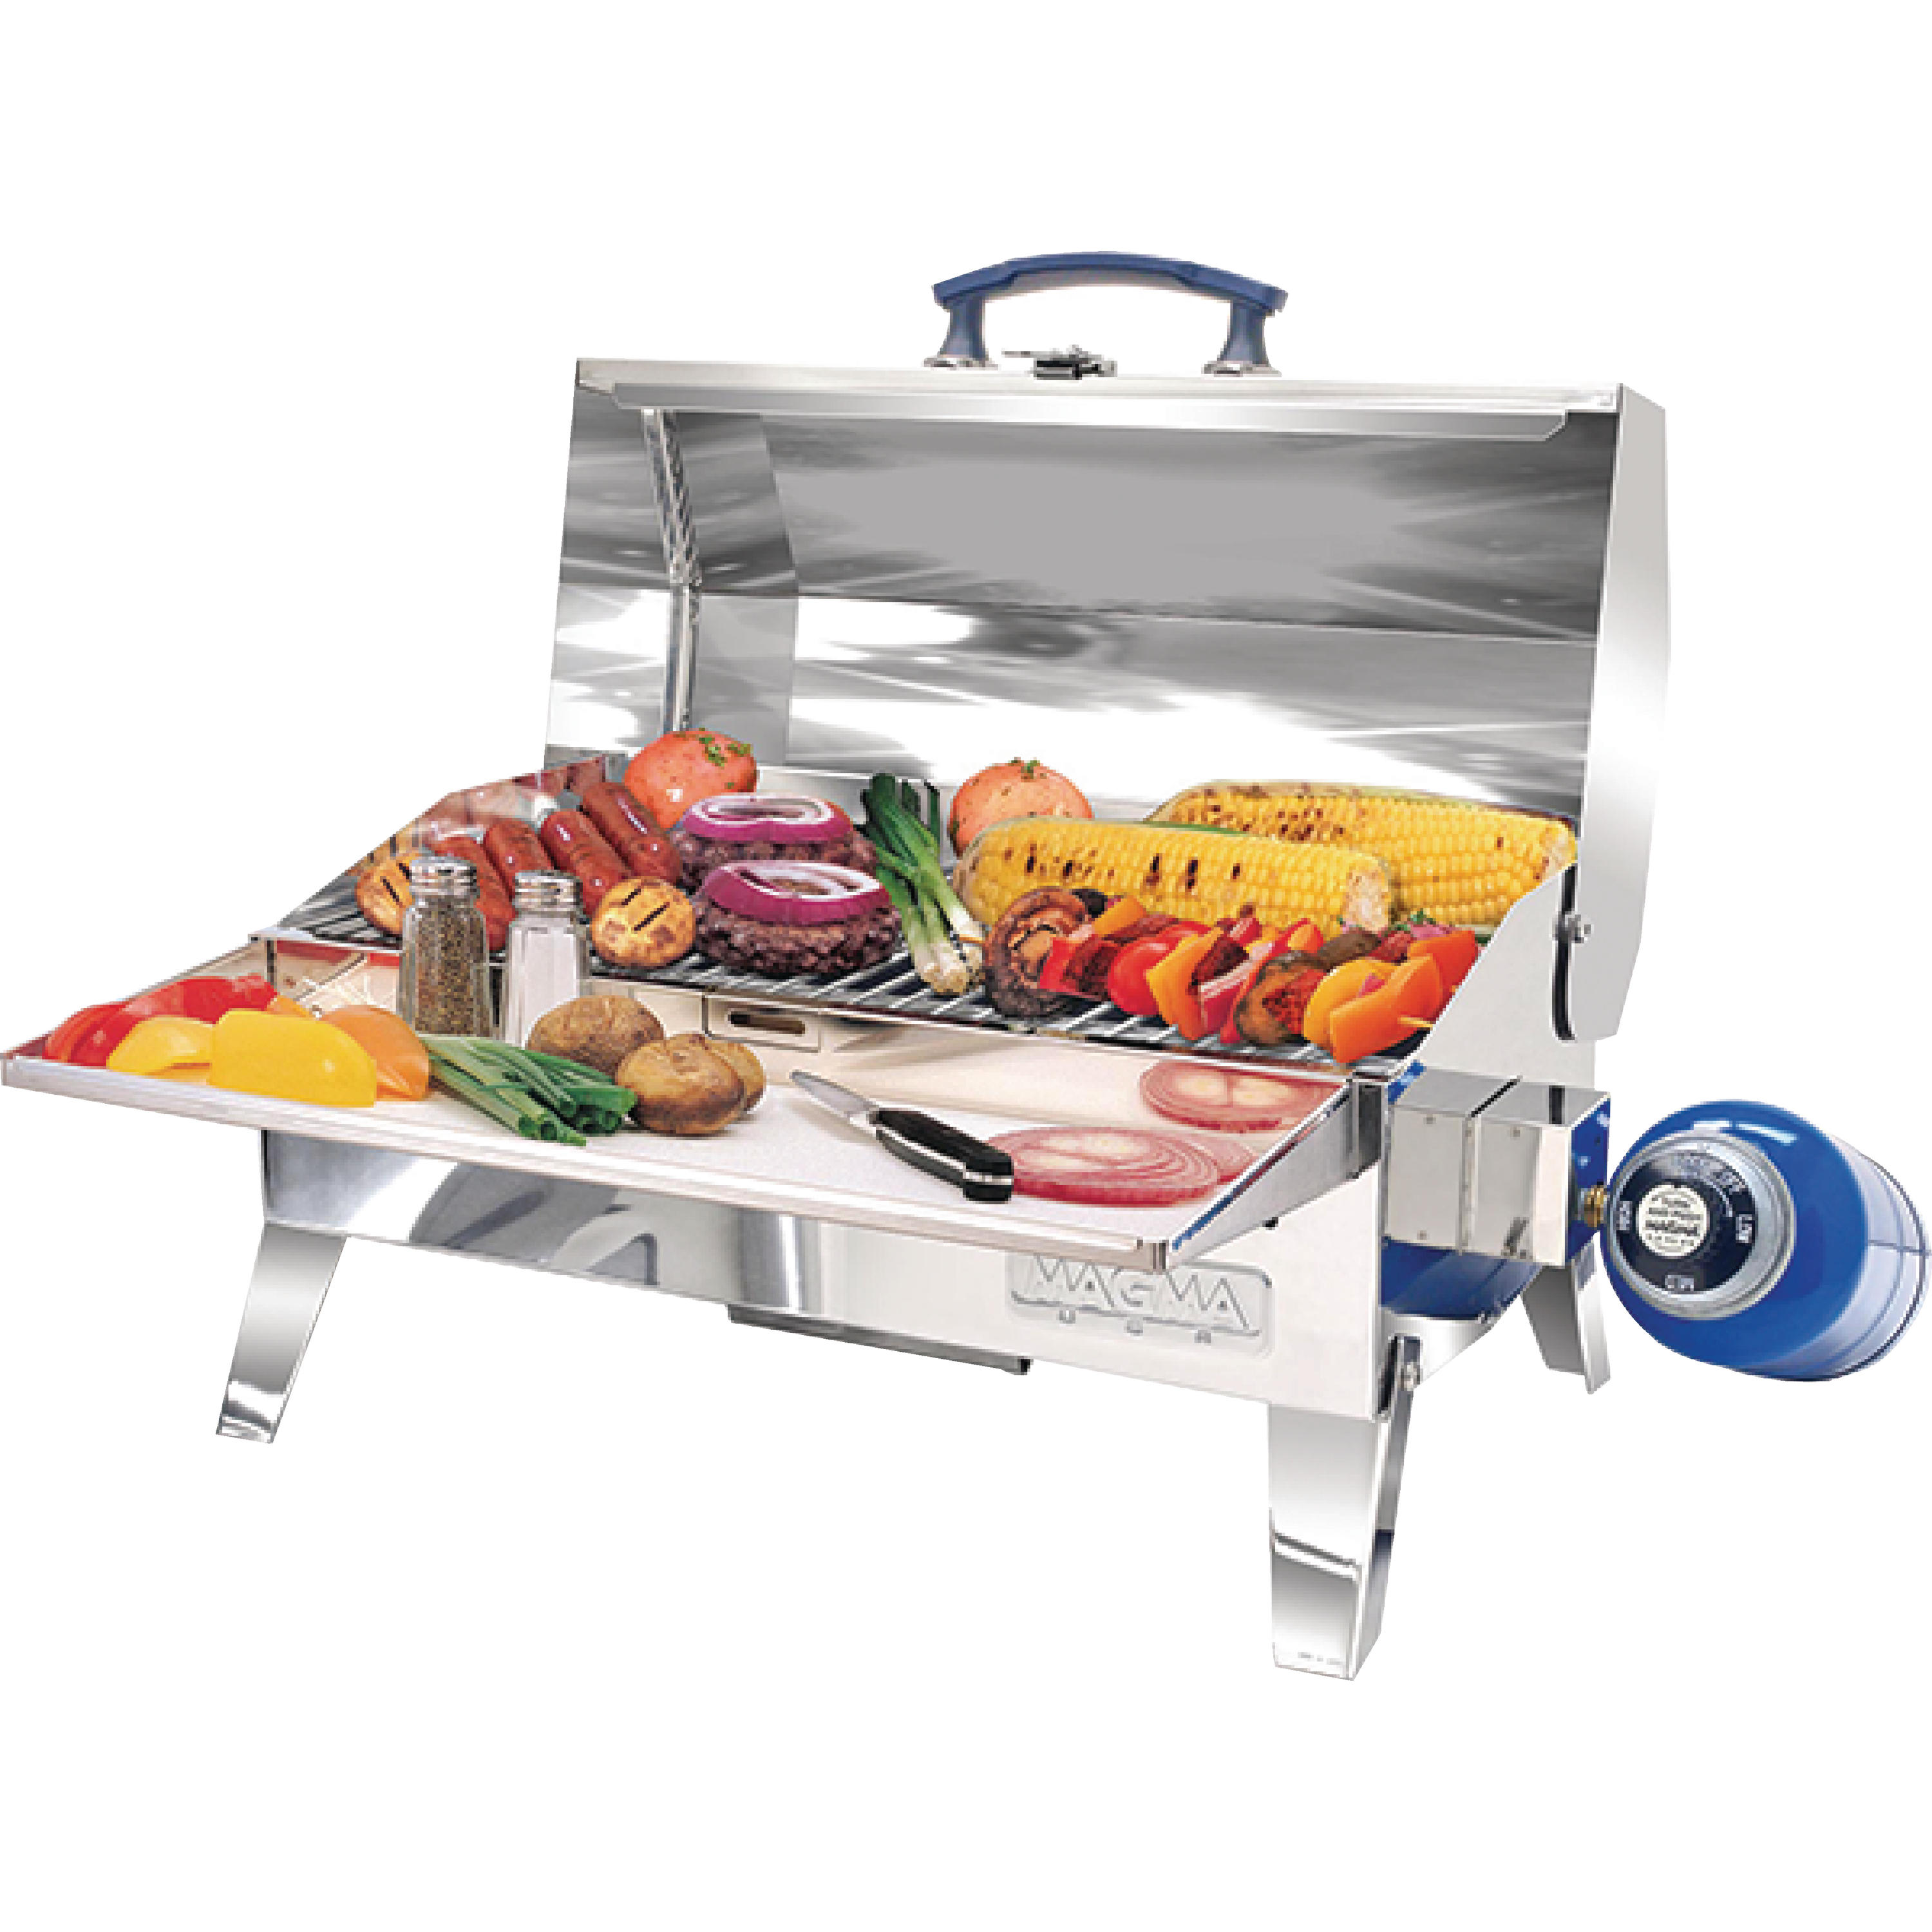 Magma A10703 Cabo Adventurer Marine Series 9 X 12 Gas Grill